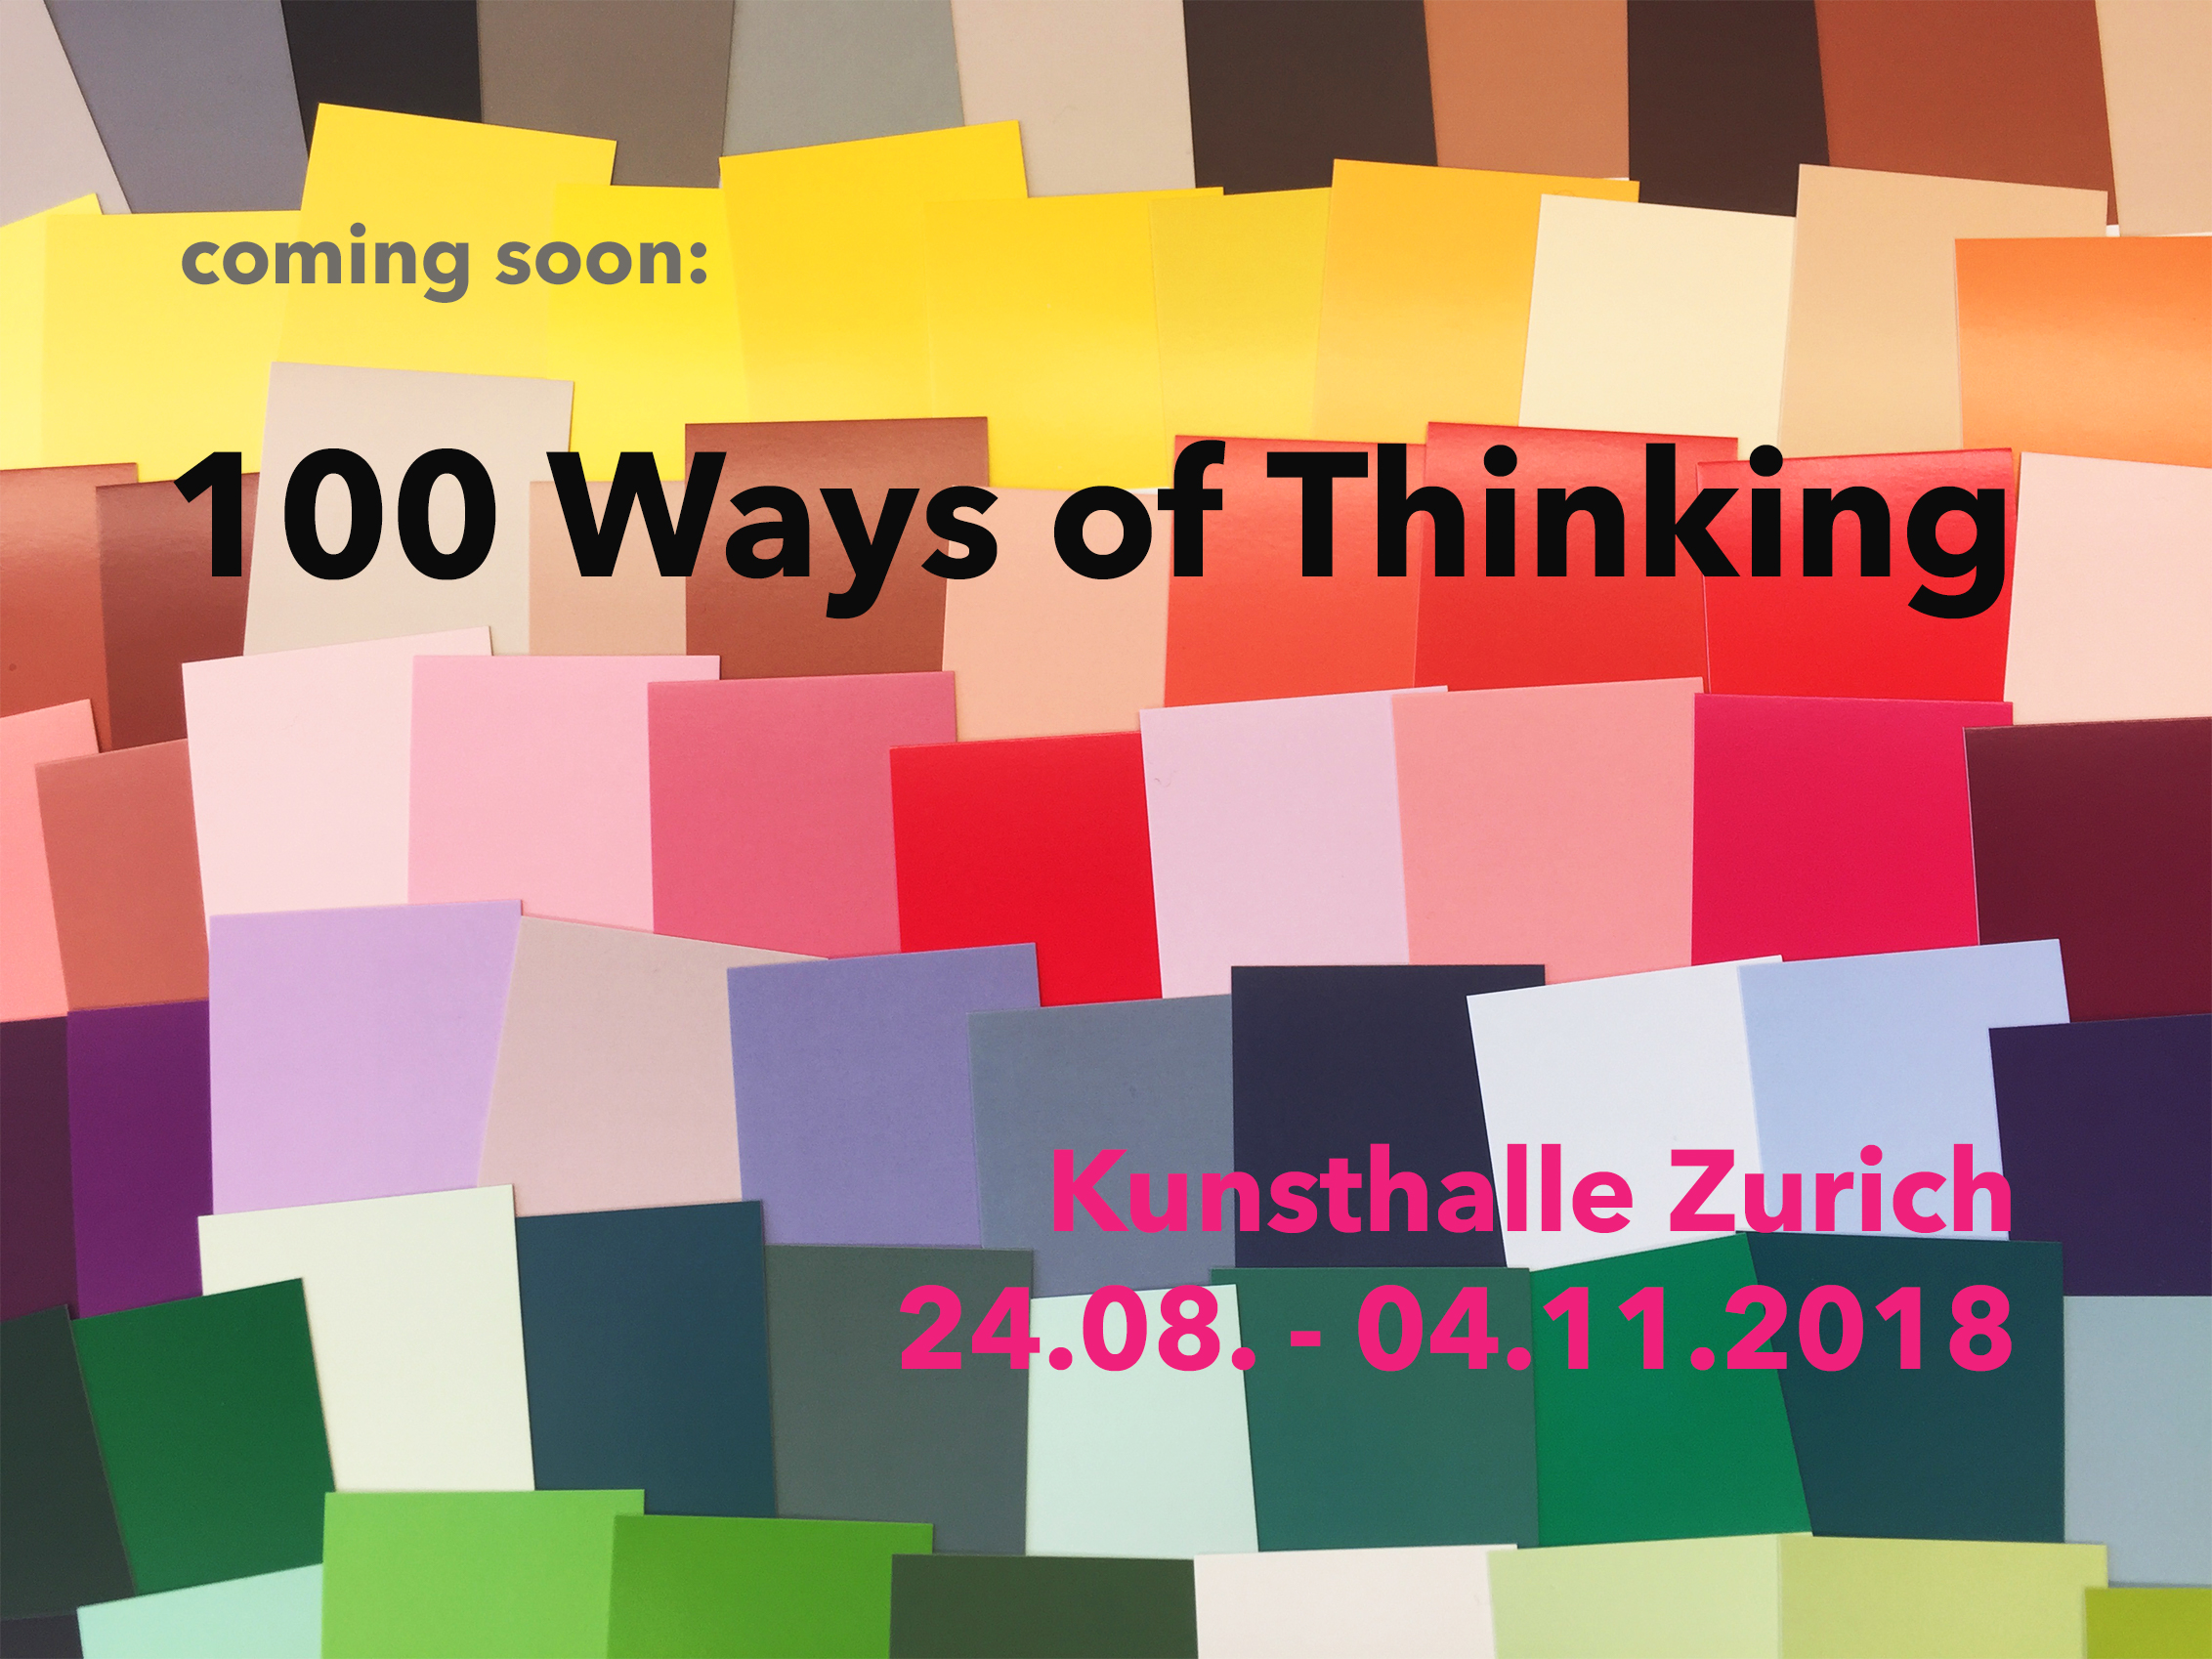 100 Ways of Thinking